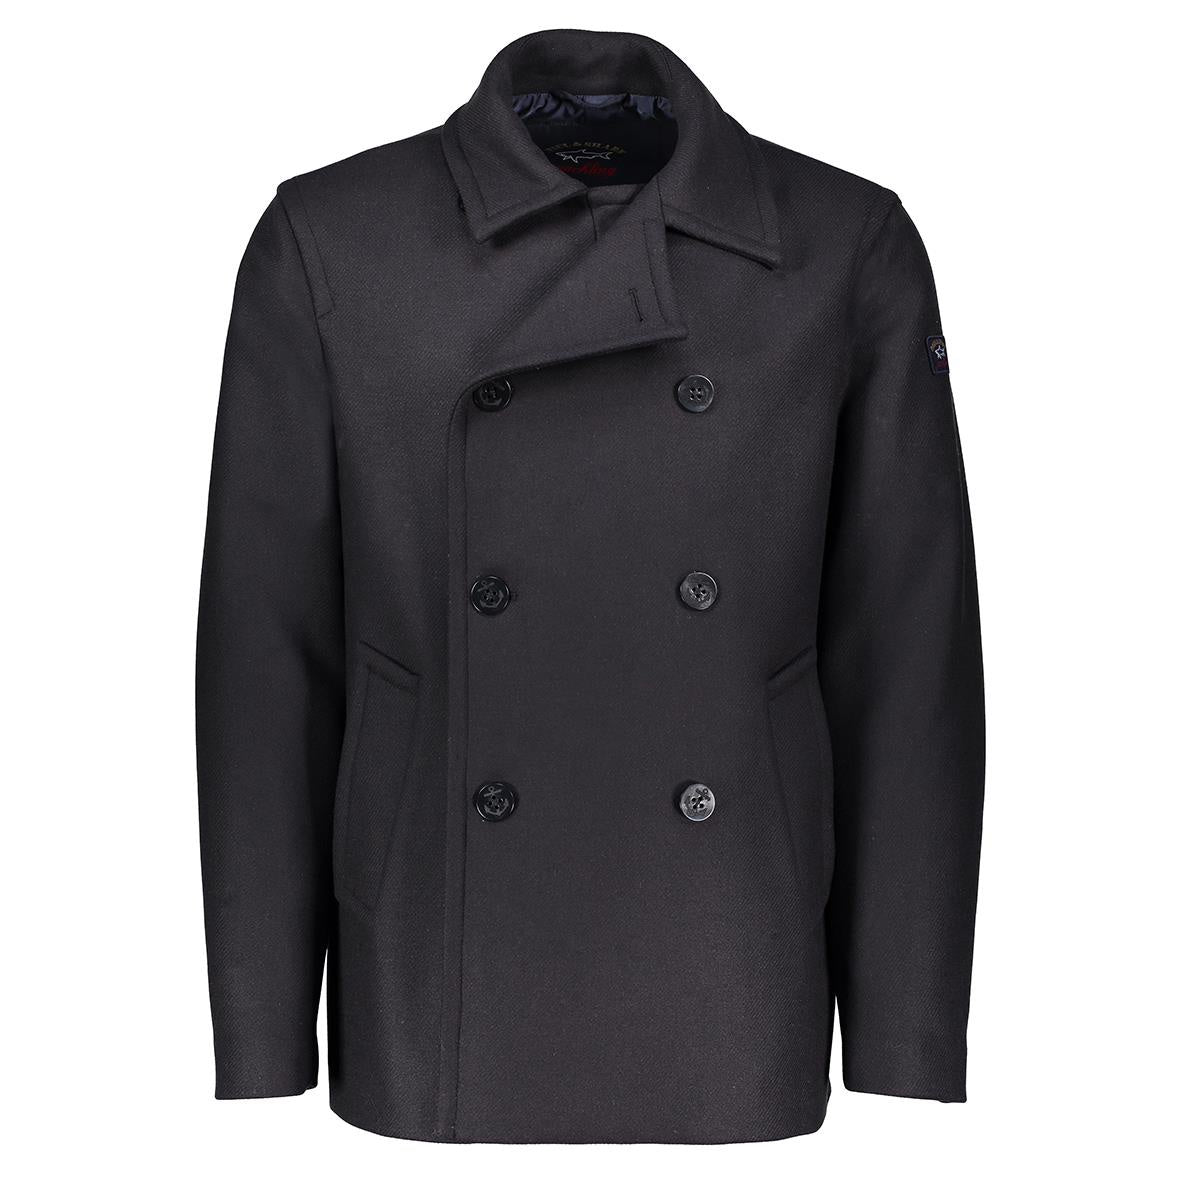 Plain Navy Pea Coat